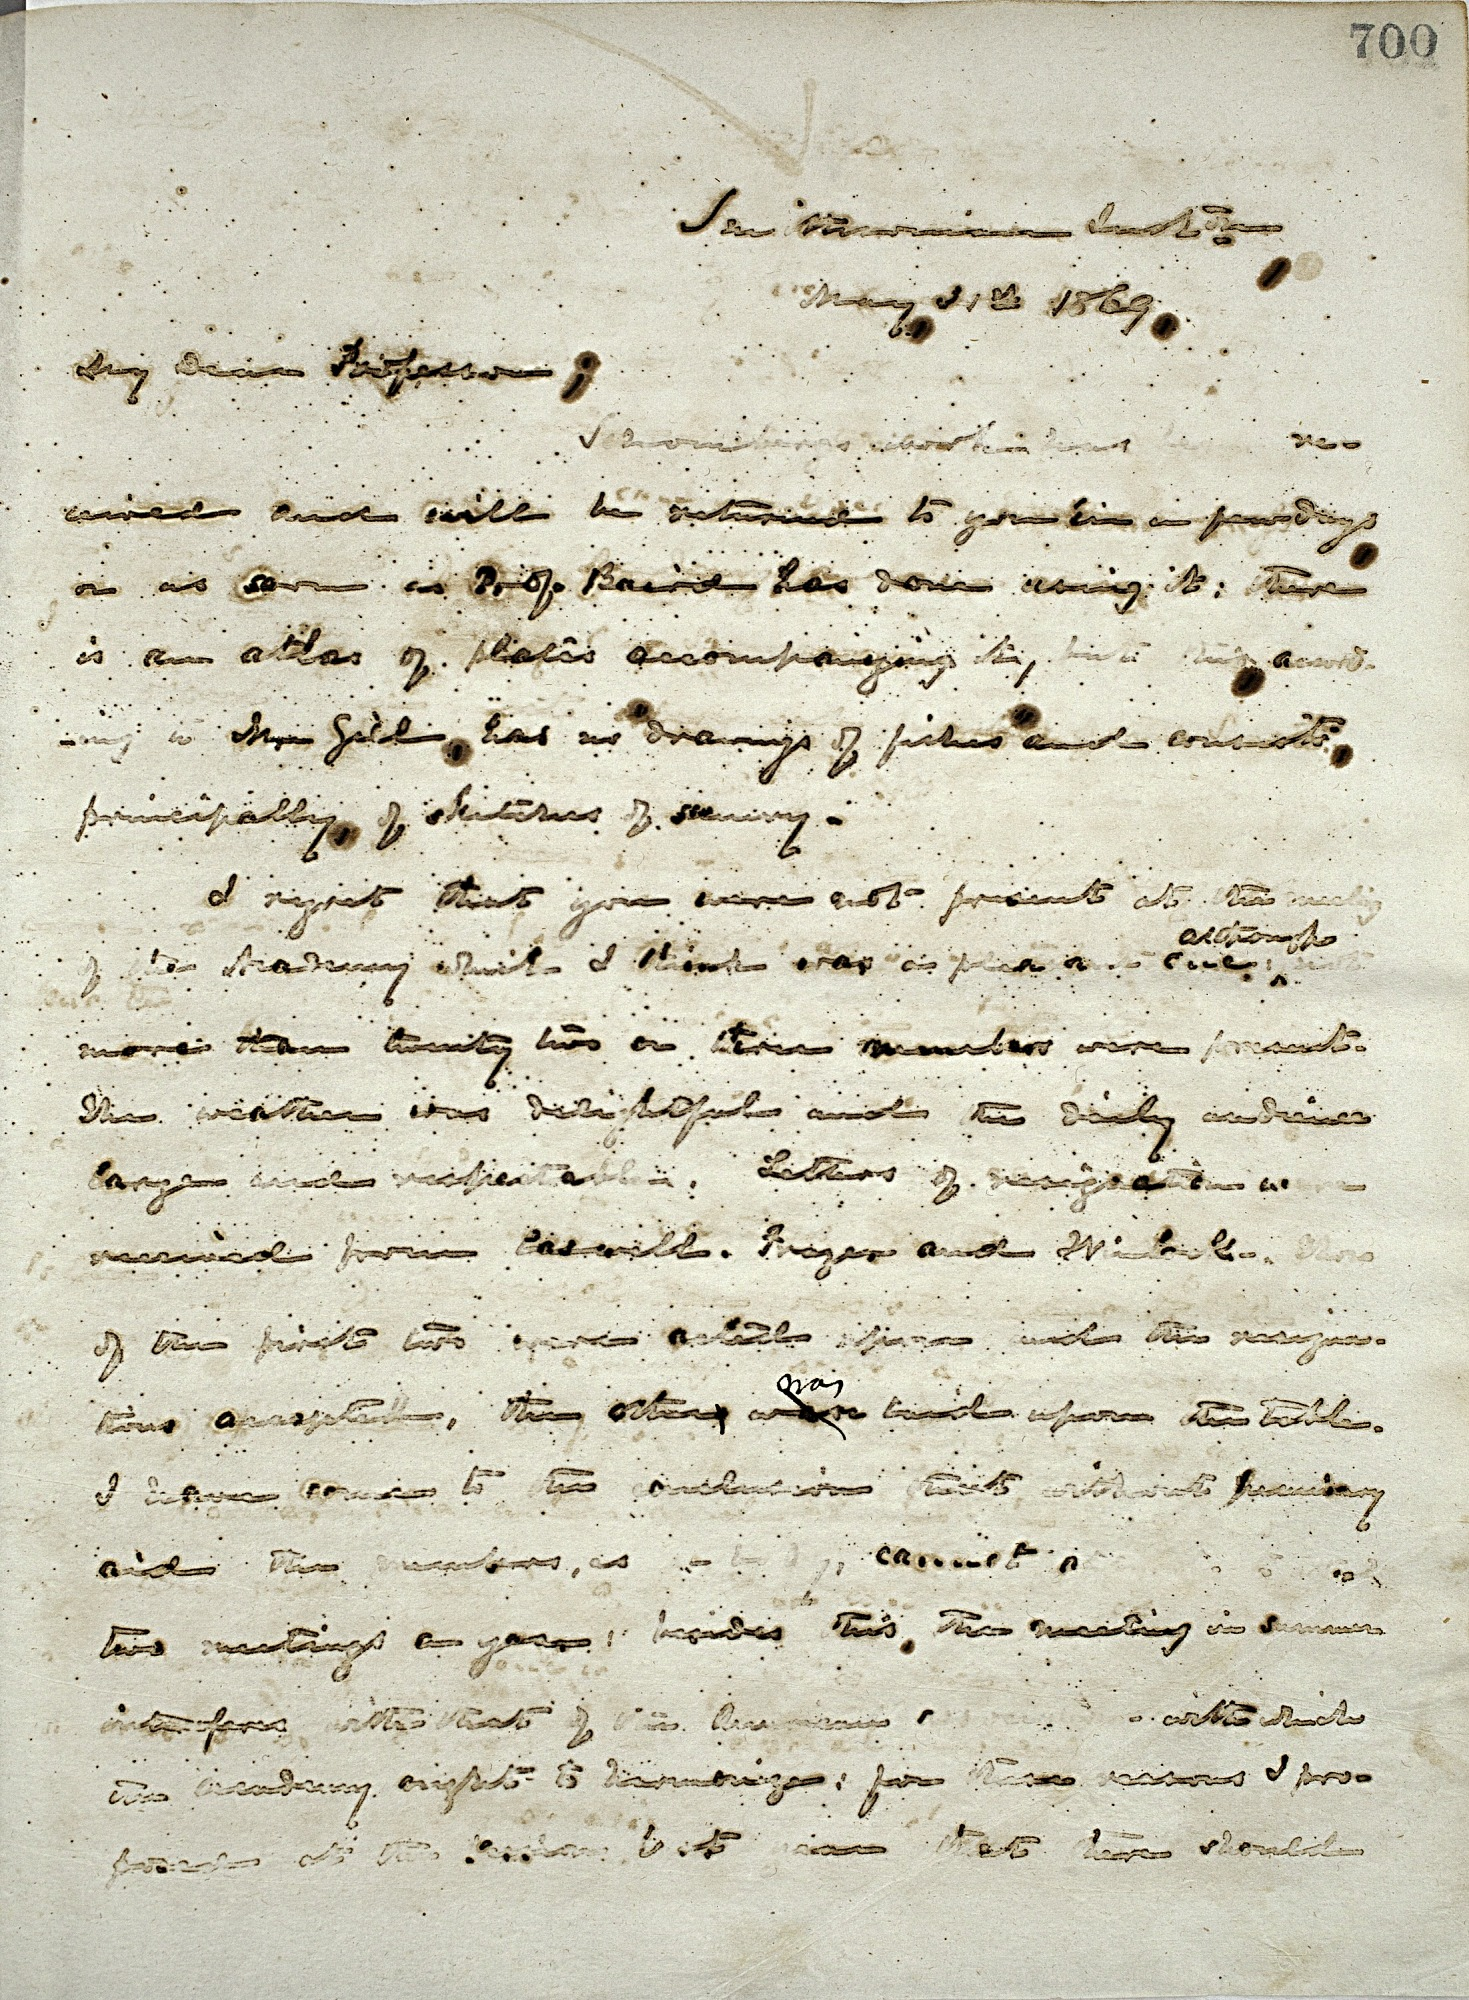 Joseph Henry's Letter to Louis Agassiz (May 31, 1869)